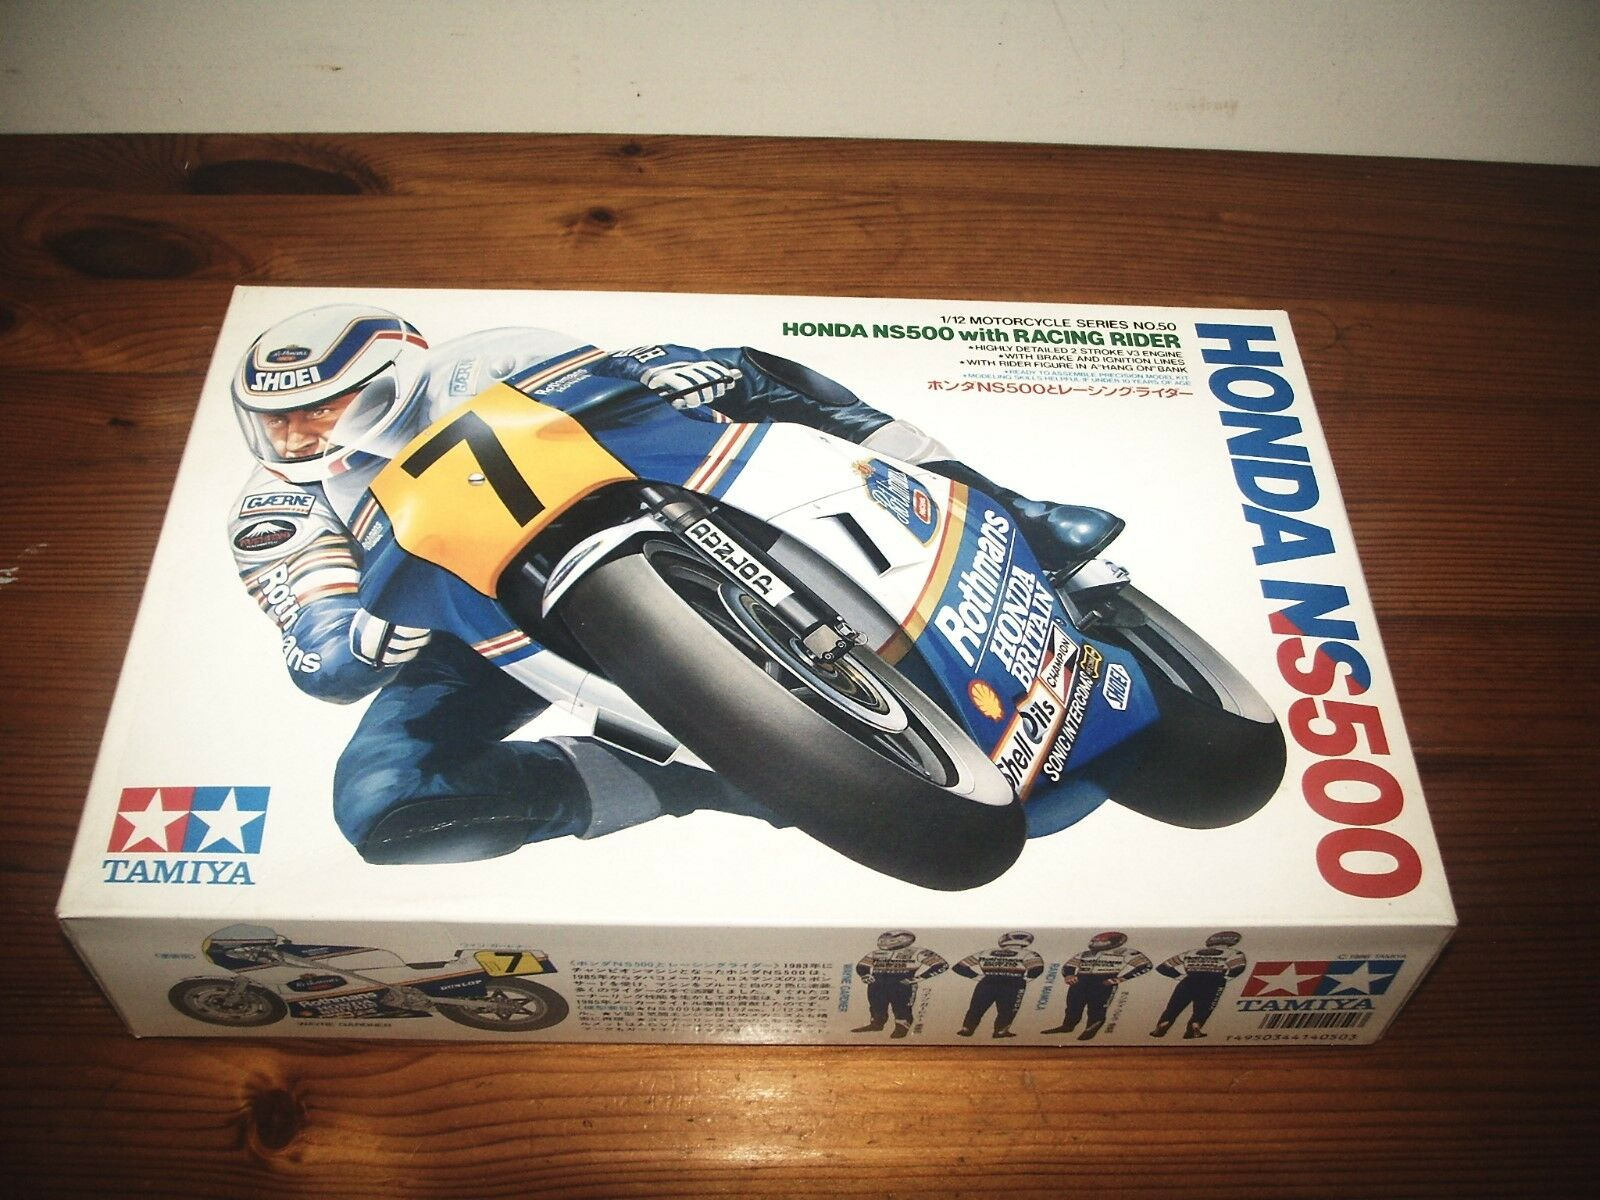 TAMIYA 1 12 HONDA NS500 WITH RACING RIDER MOTORCYCLE MODEL KIT 14050